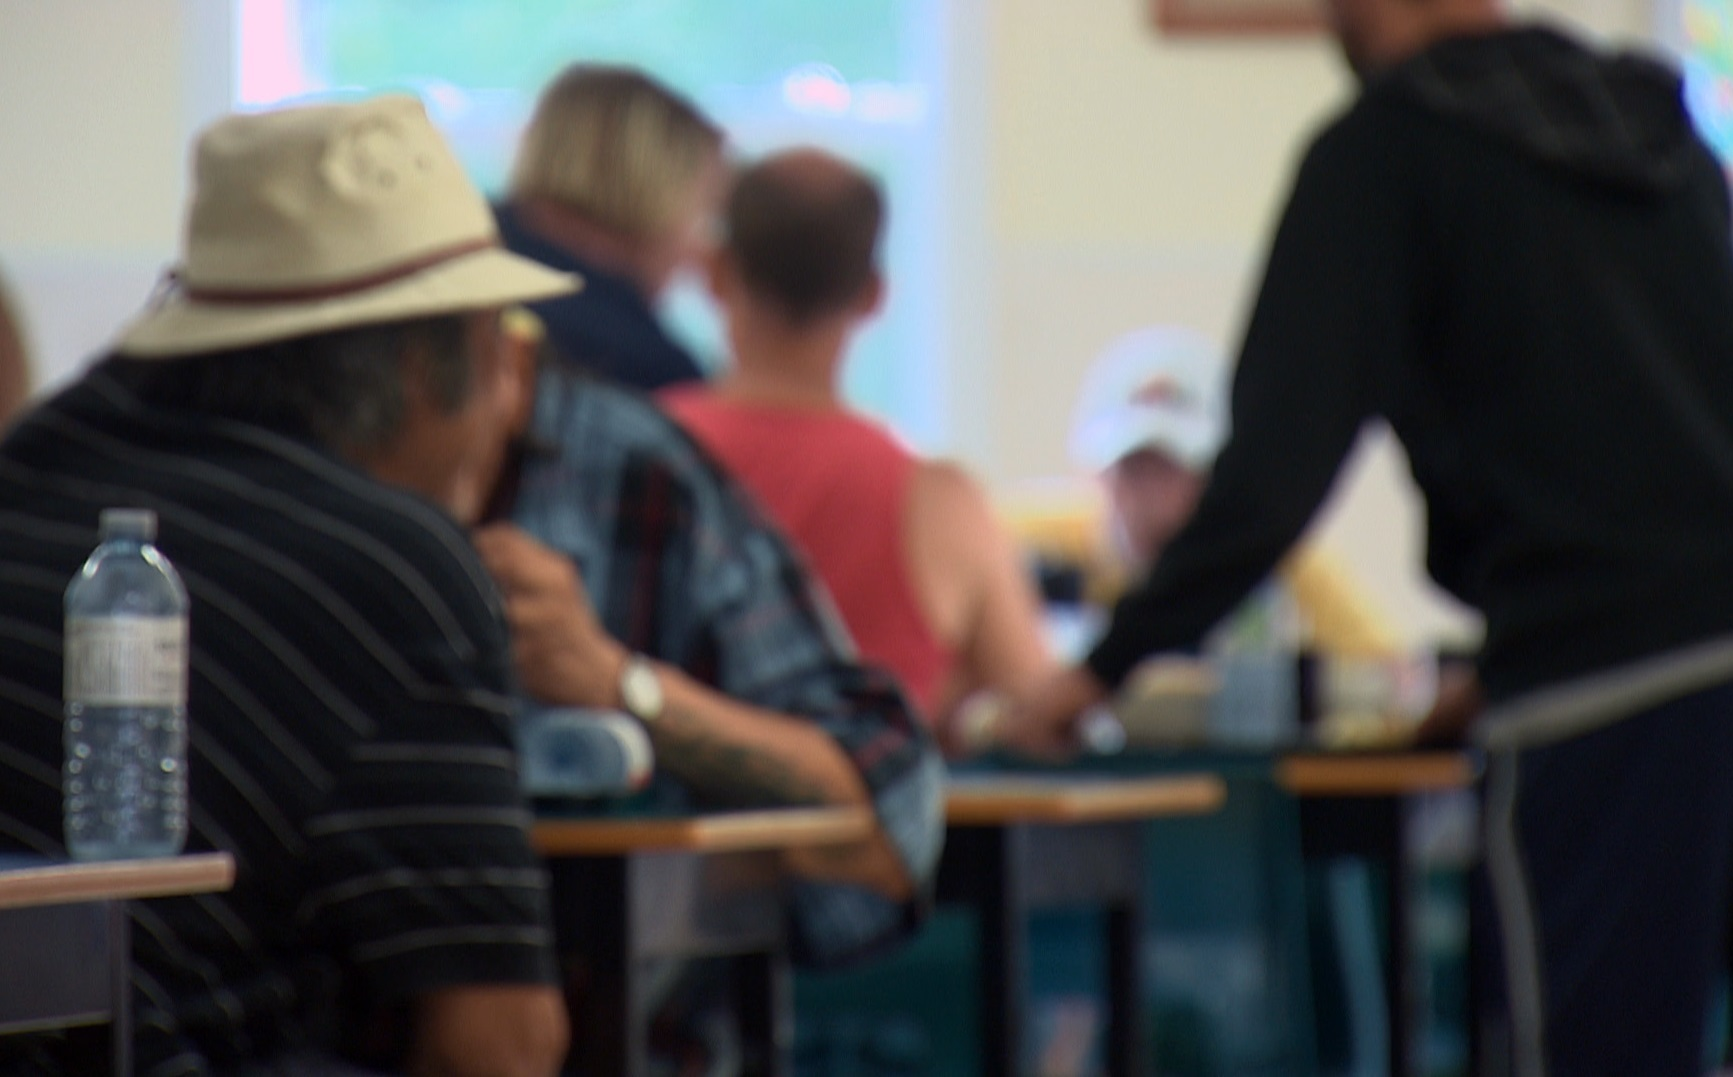 Hope Cottage serves more than 200 meals a day. (Steve Berry/CBC)